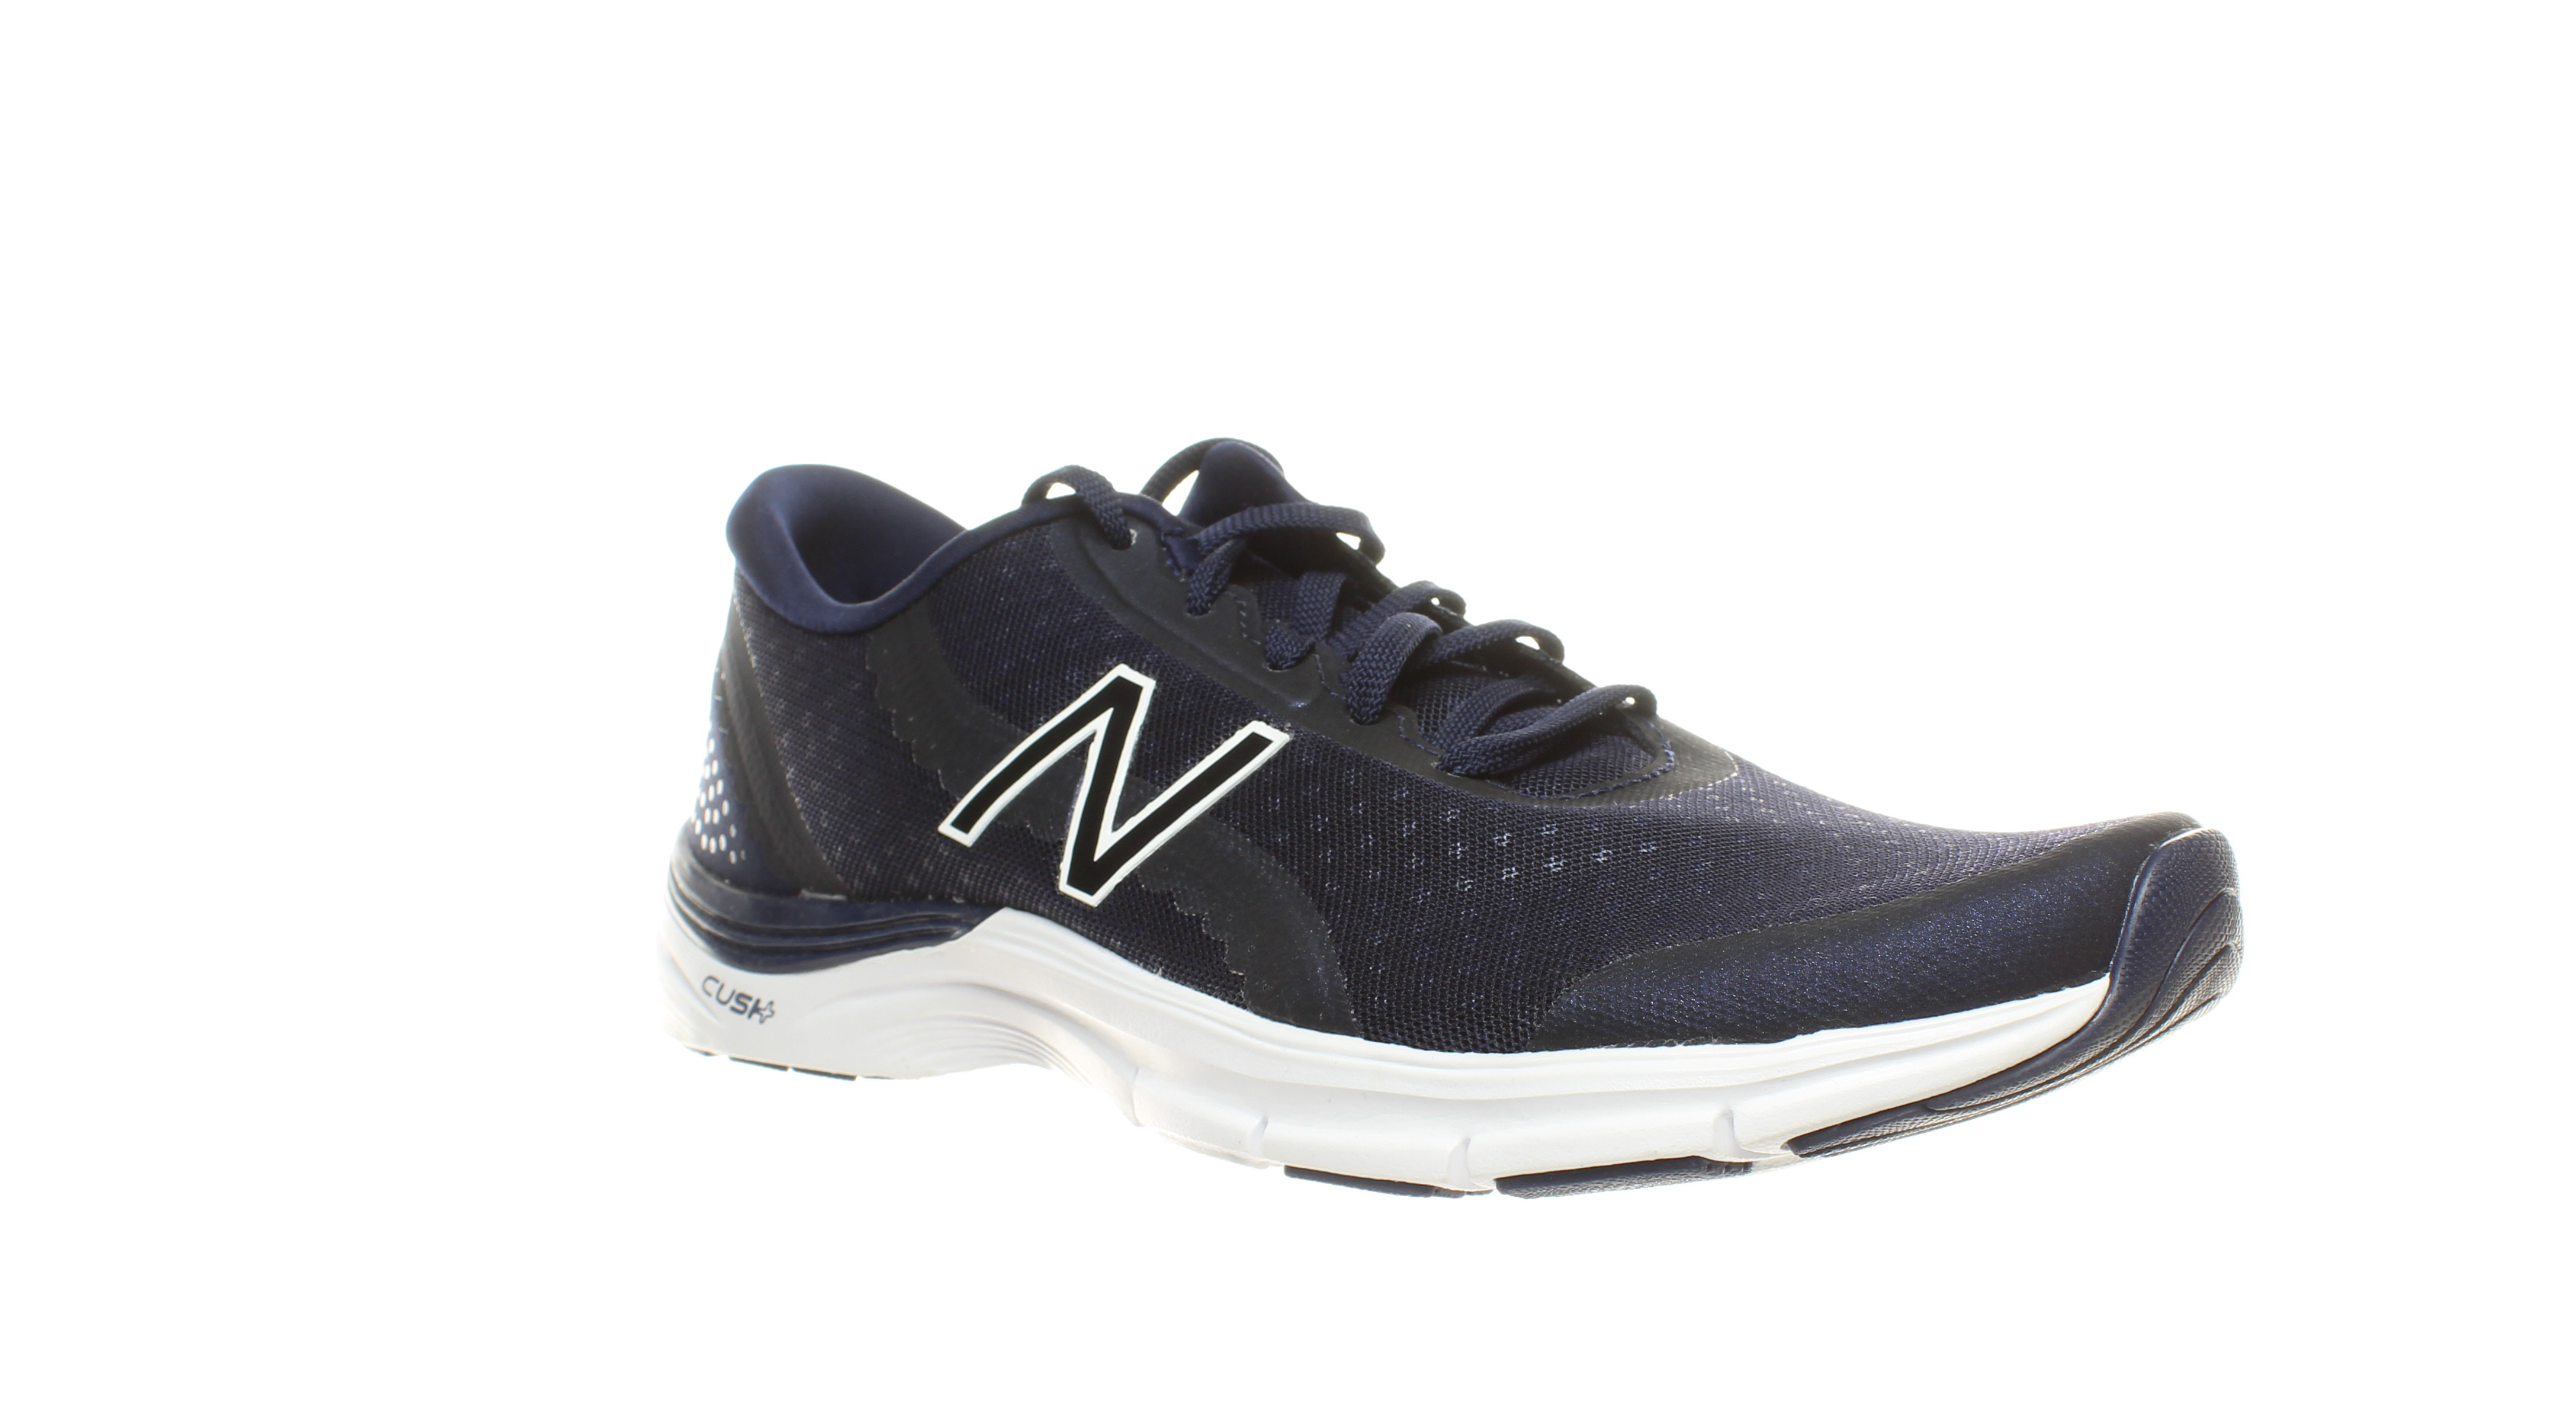 Details about New Balance Womens Wx711fp3 PigmentWhite Running Shoes Size 11 (351222)